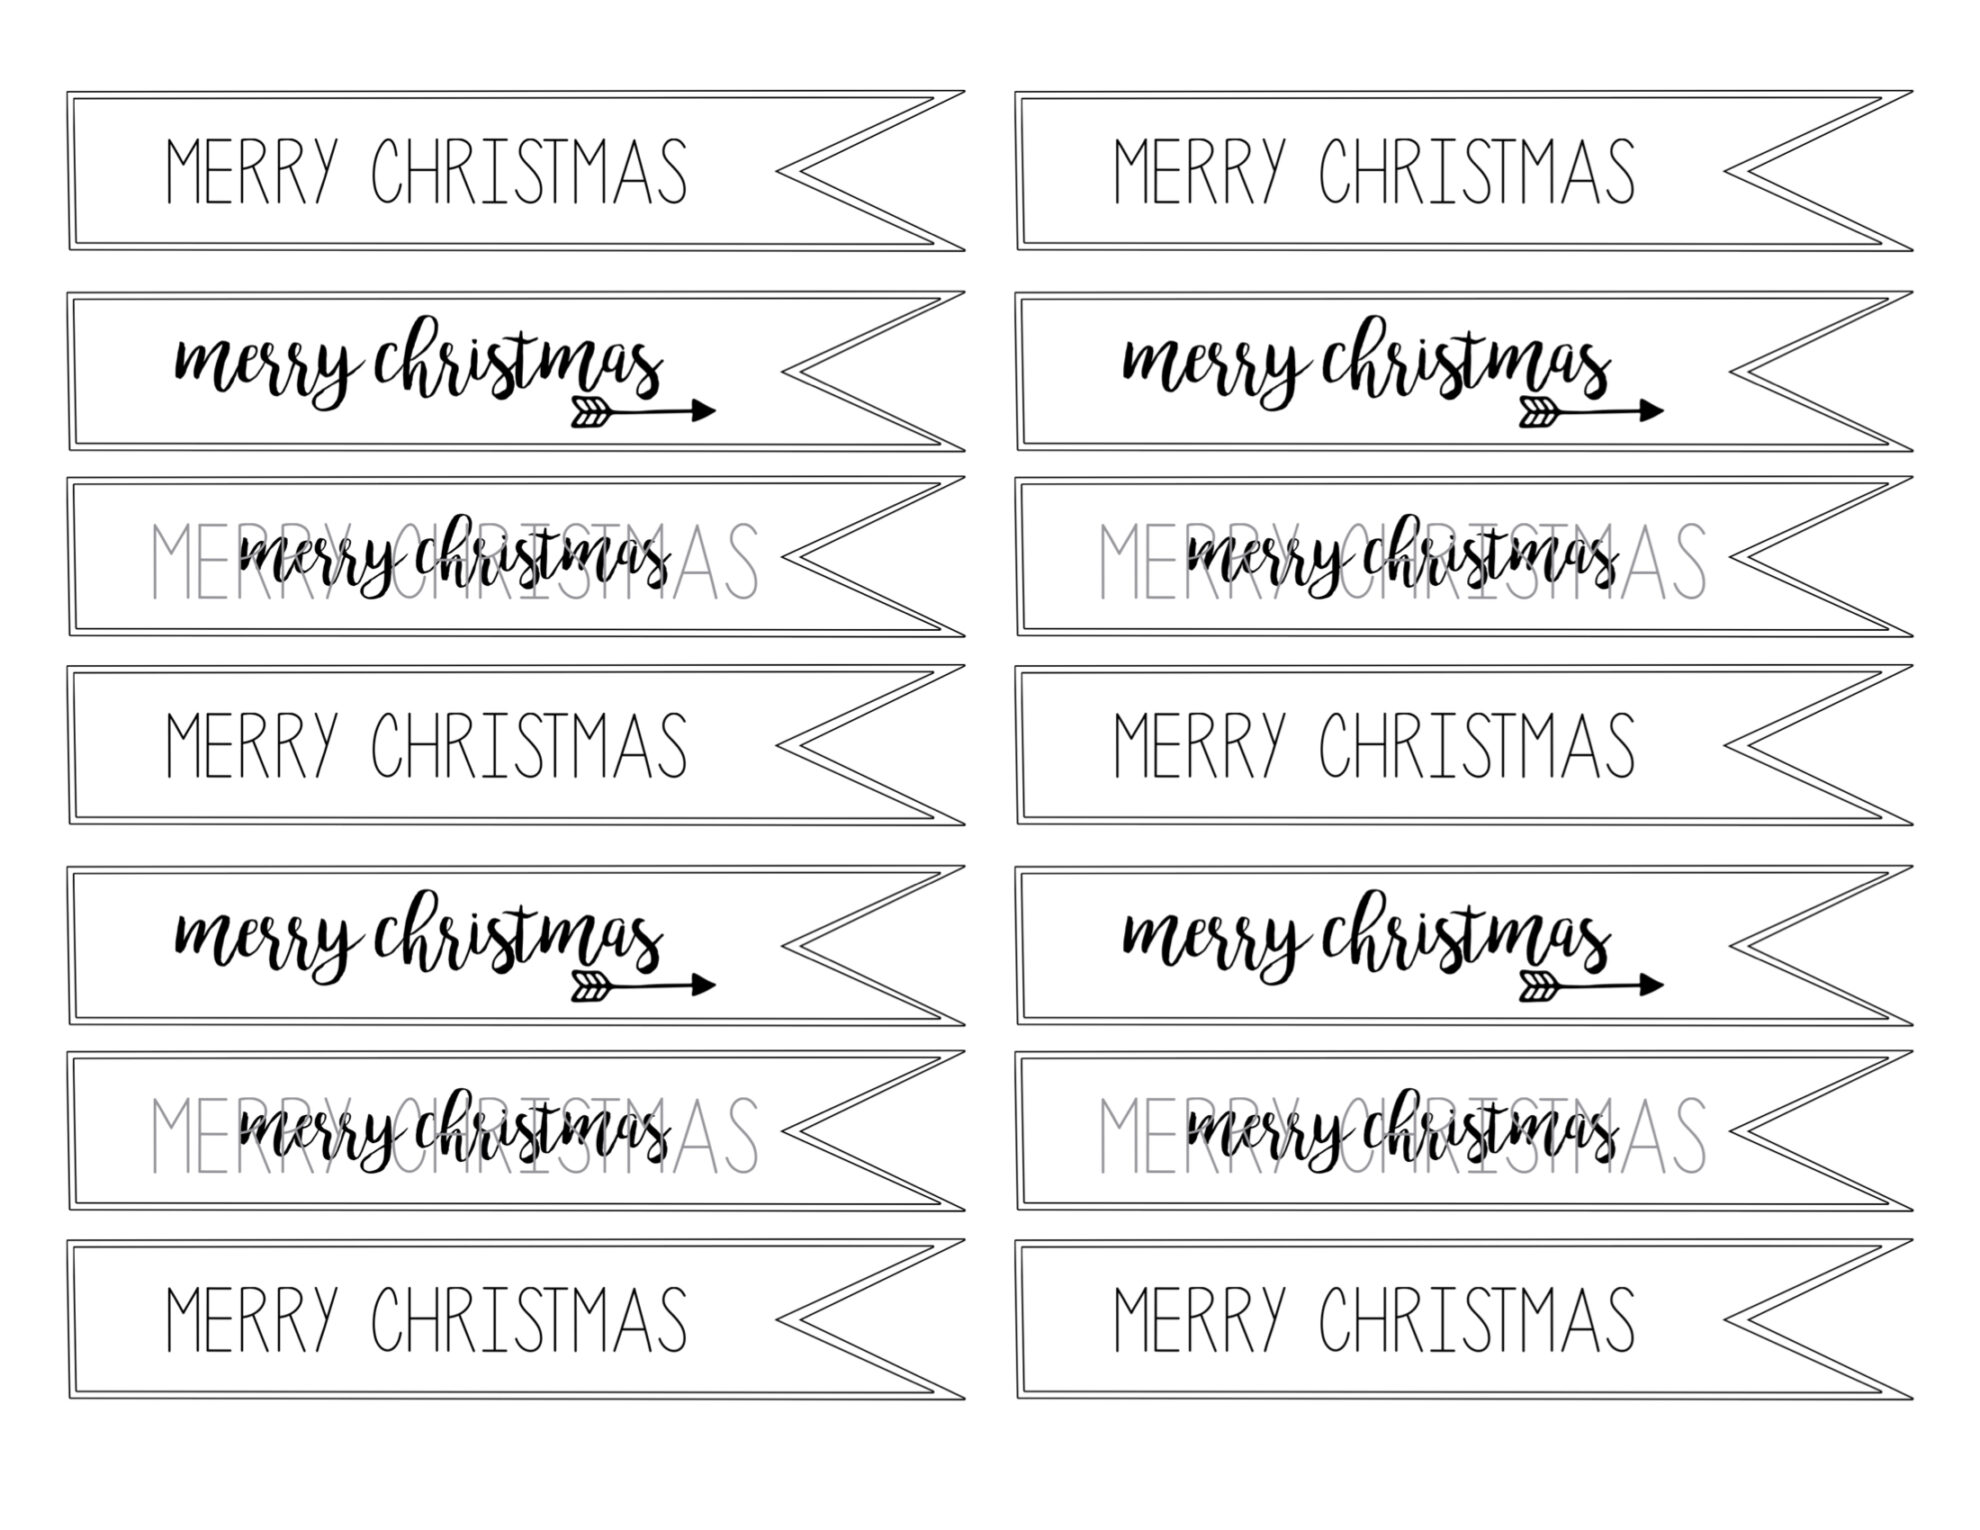 Merry Christmas Tag Free Printable - Paper Trail Design